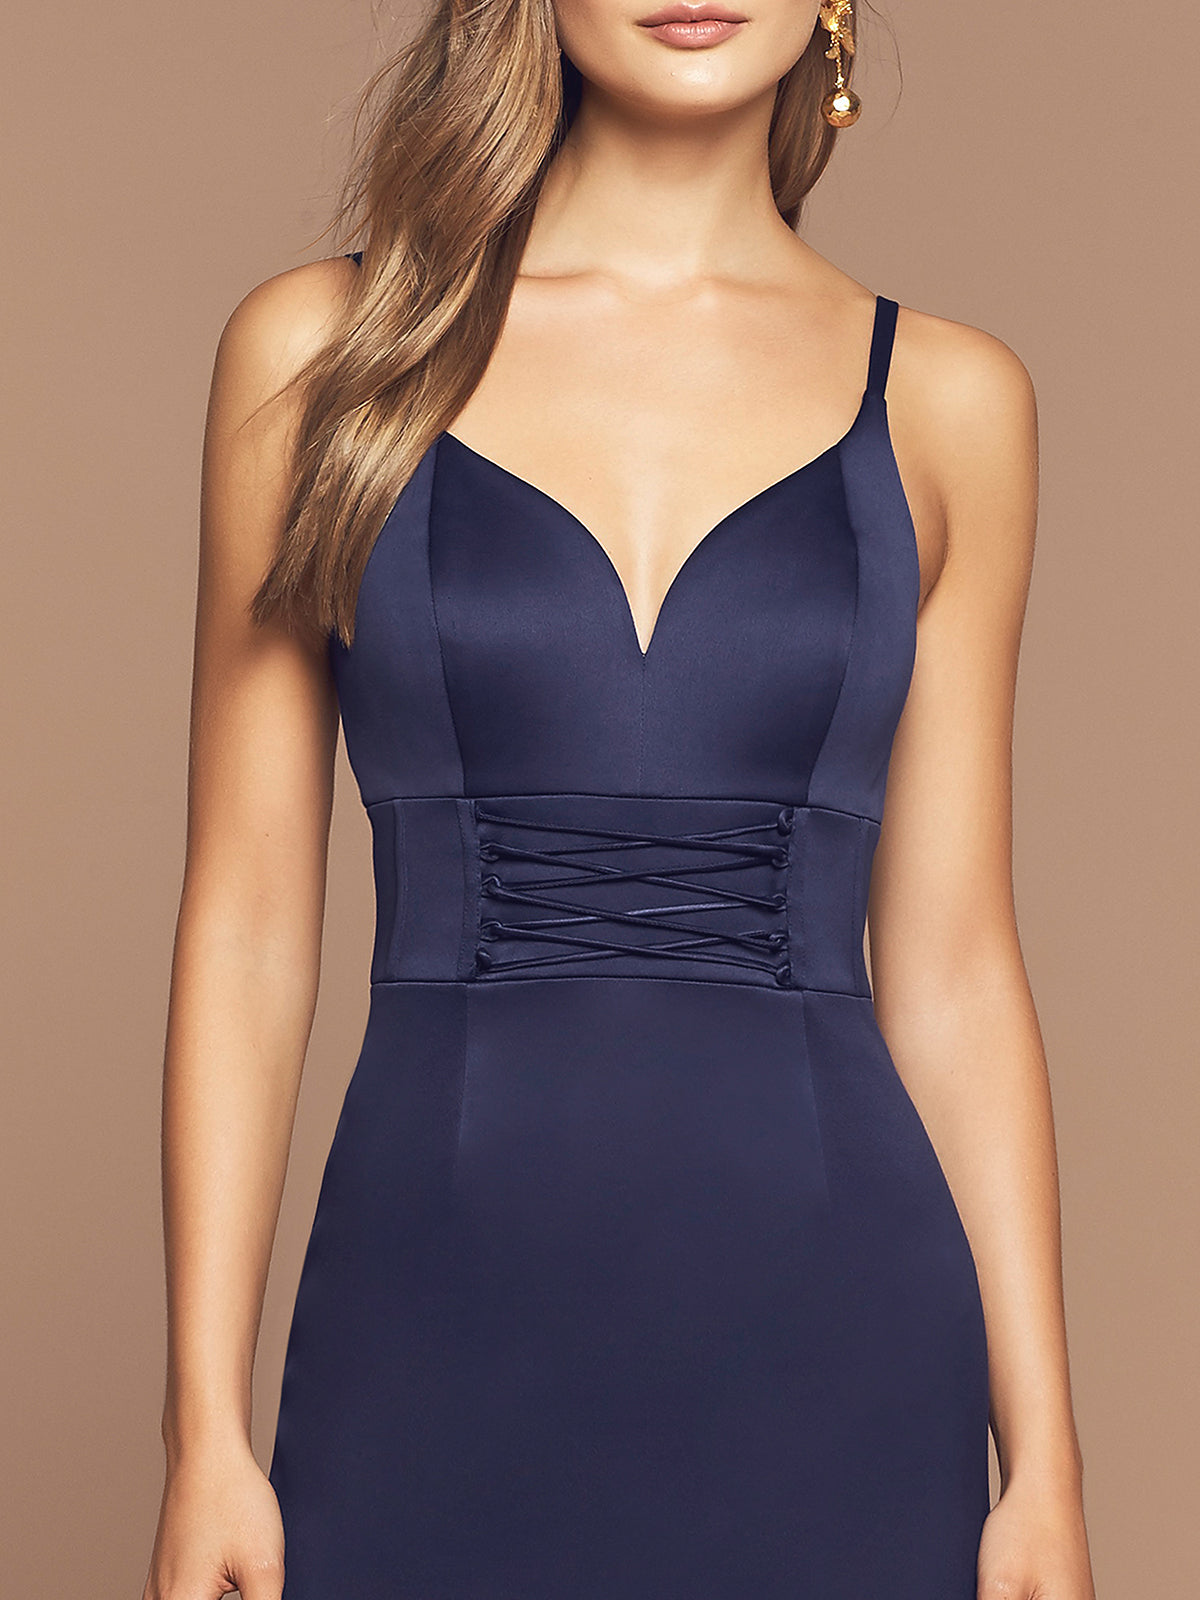 GIA DRESS - NAVY